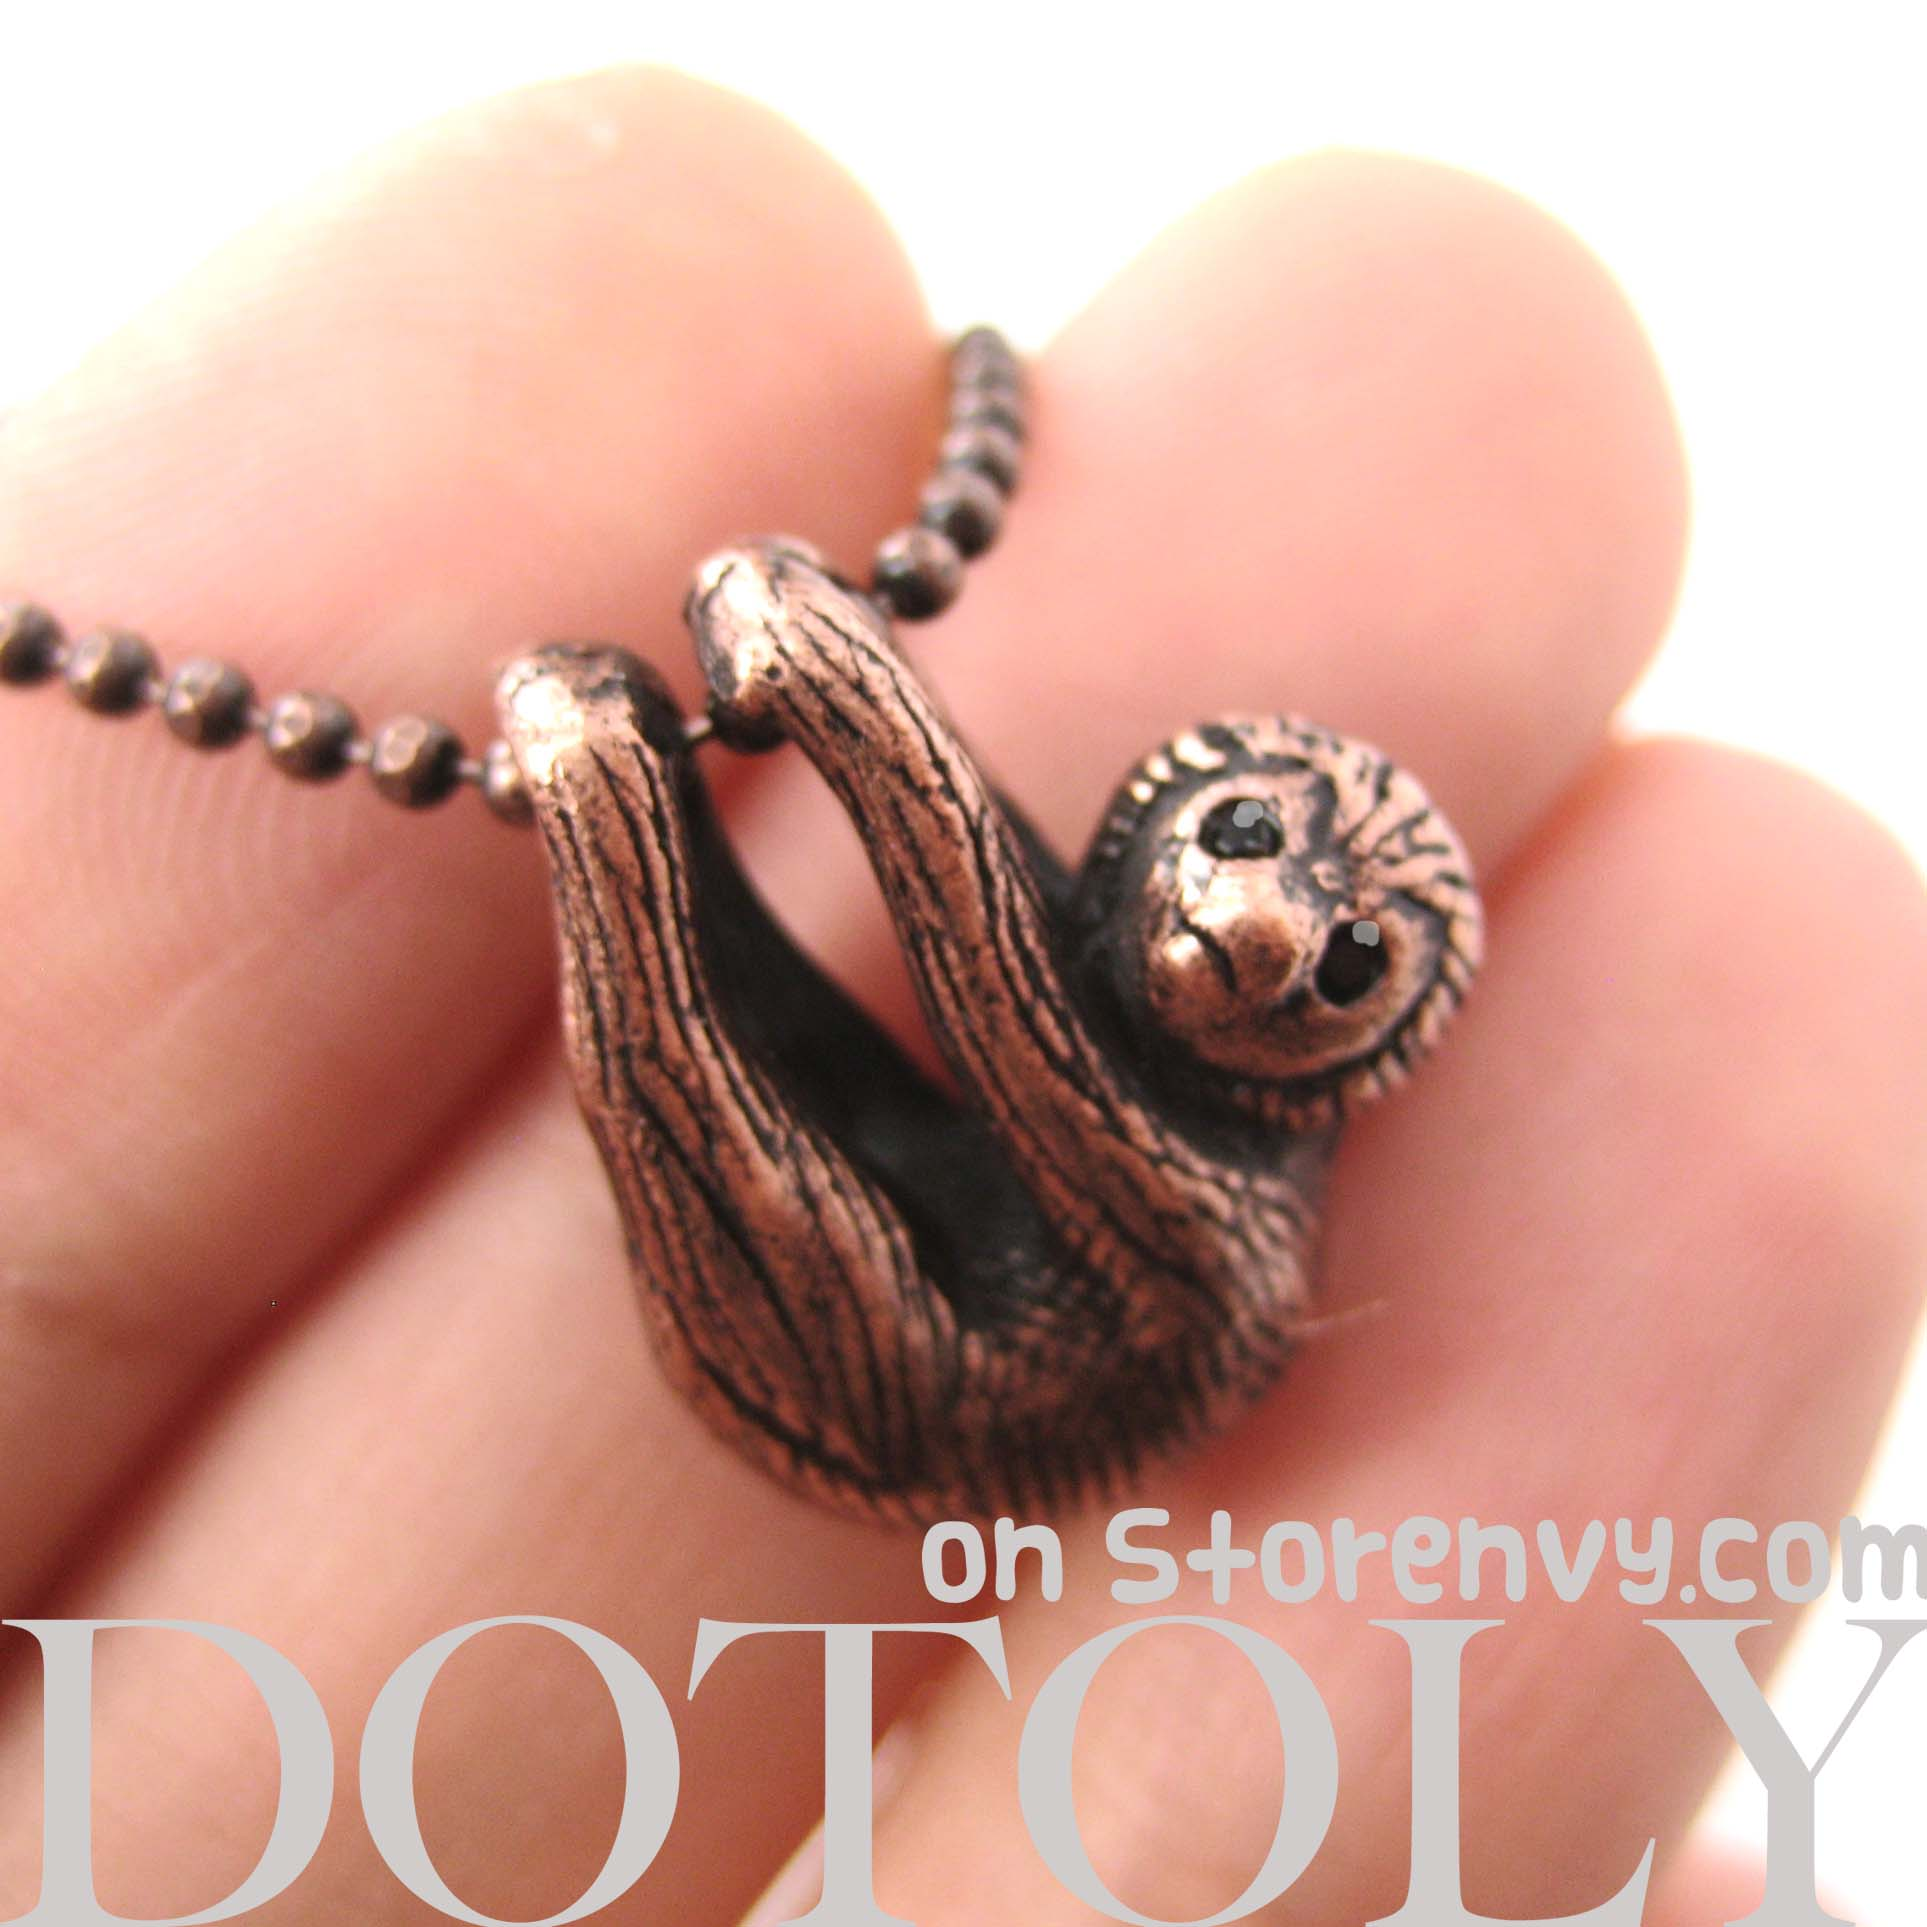 sloth-baby-animal-pendant-necklace-copper